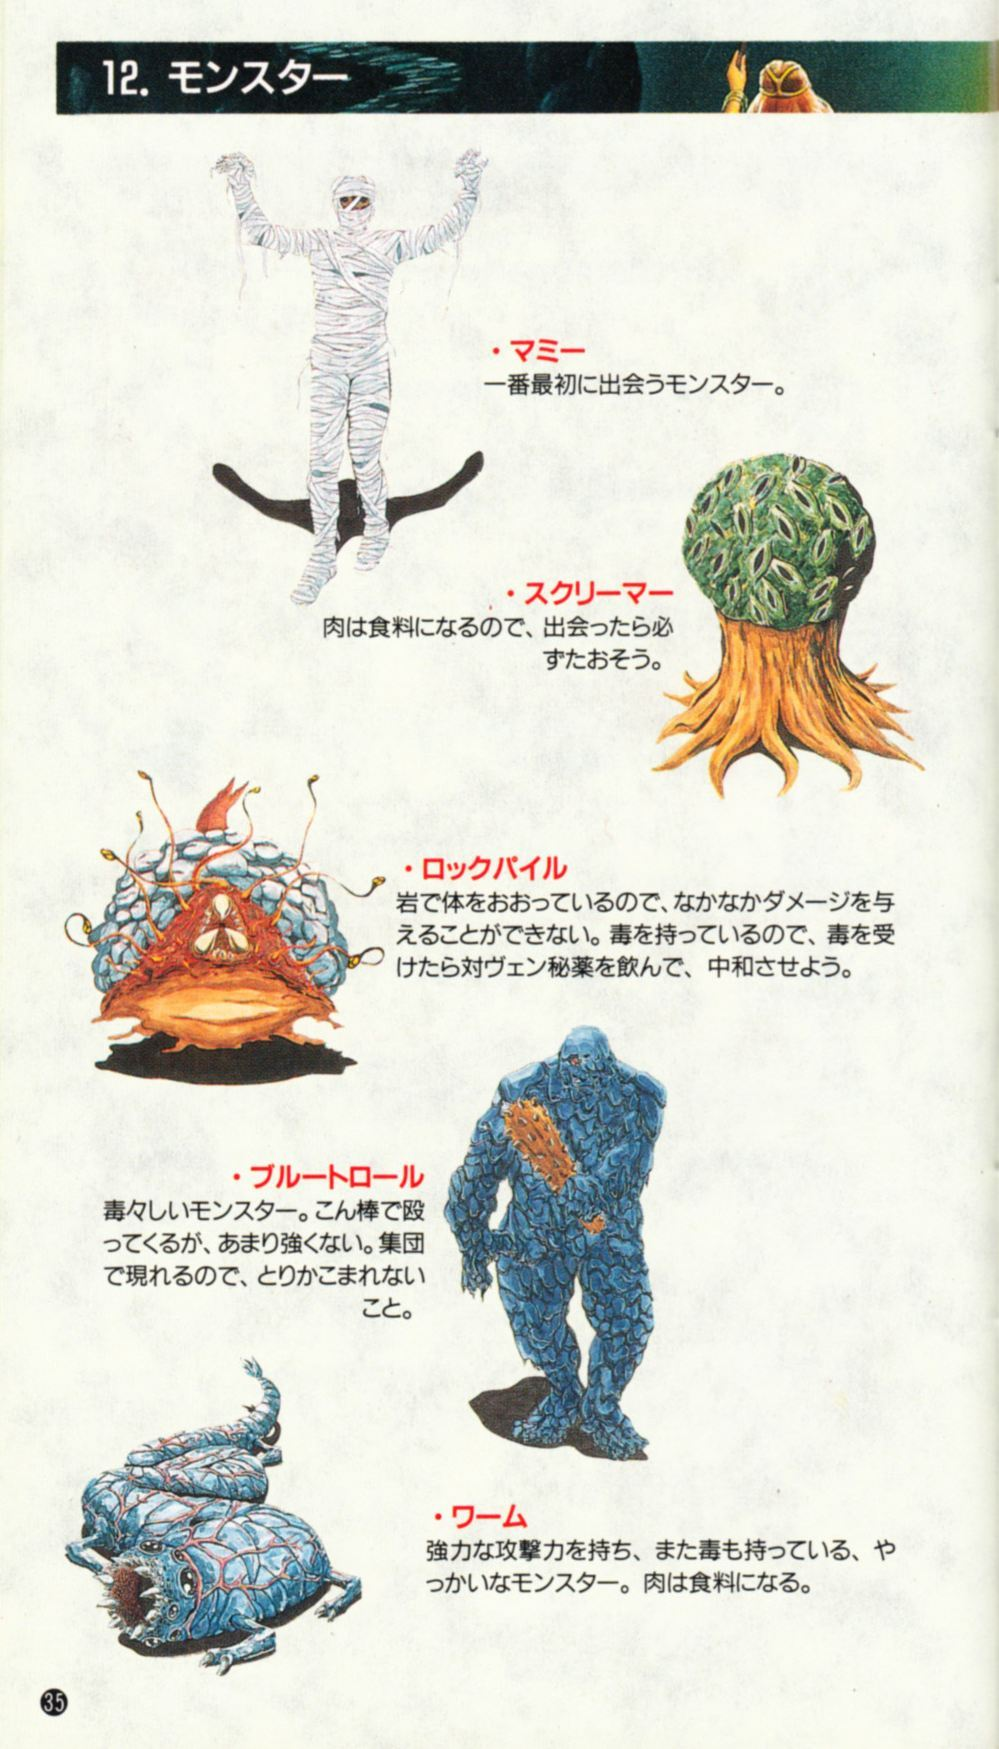 Game - Dungeon Master - JP - Super Famicom - Manual - Page 038 - Scan